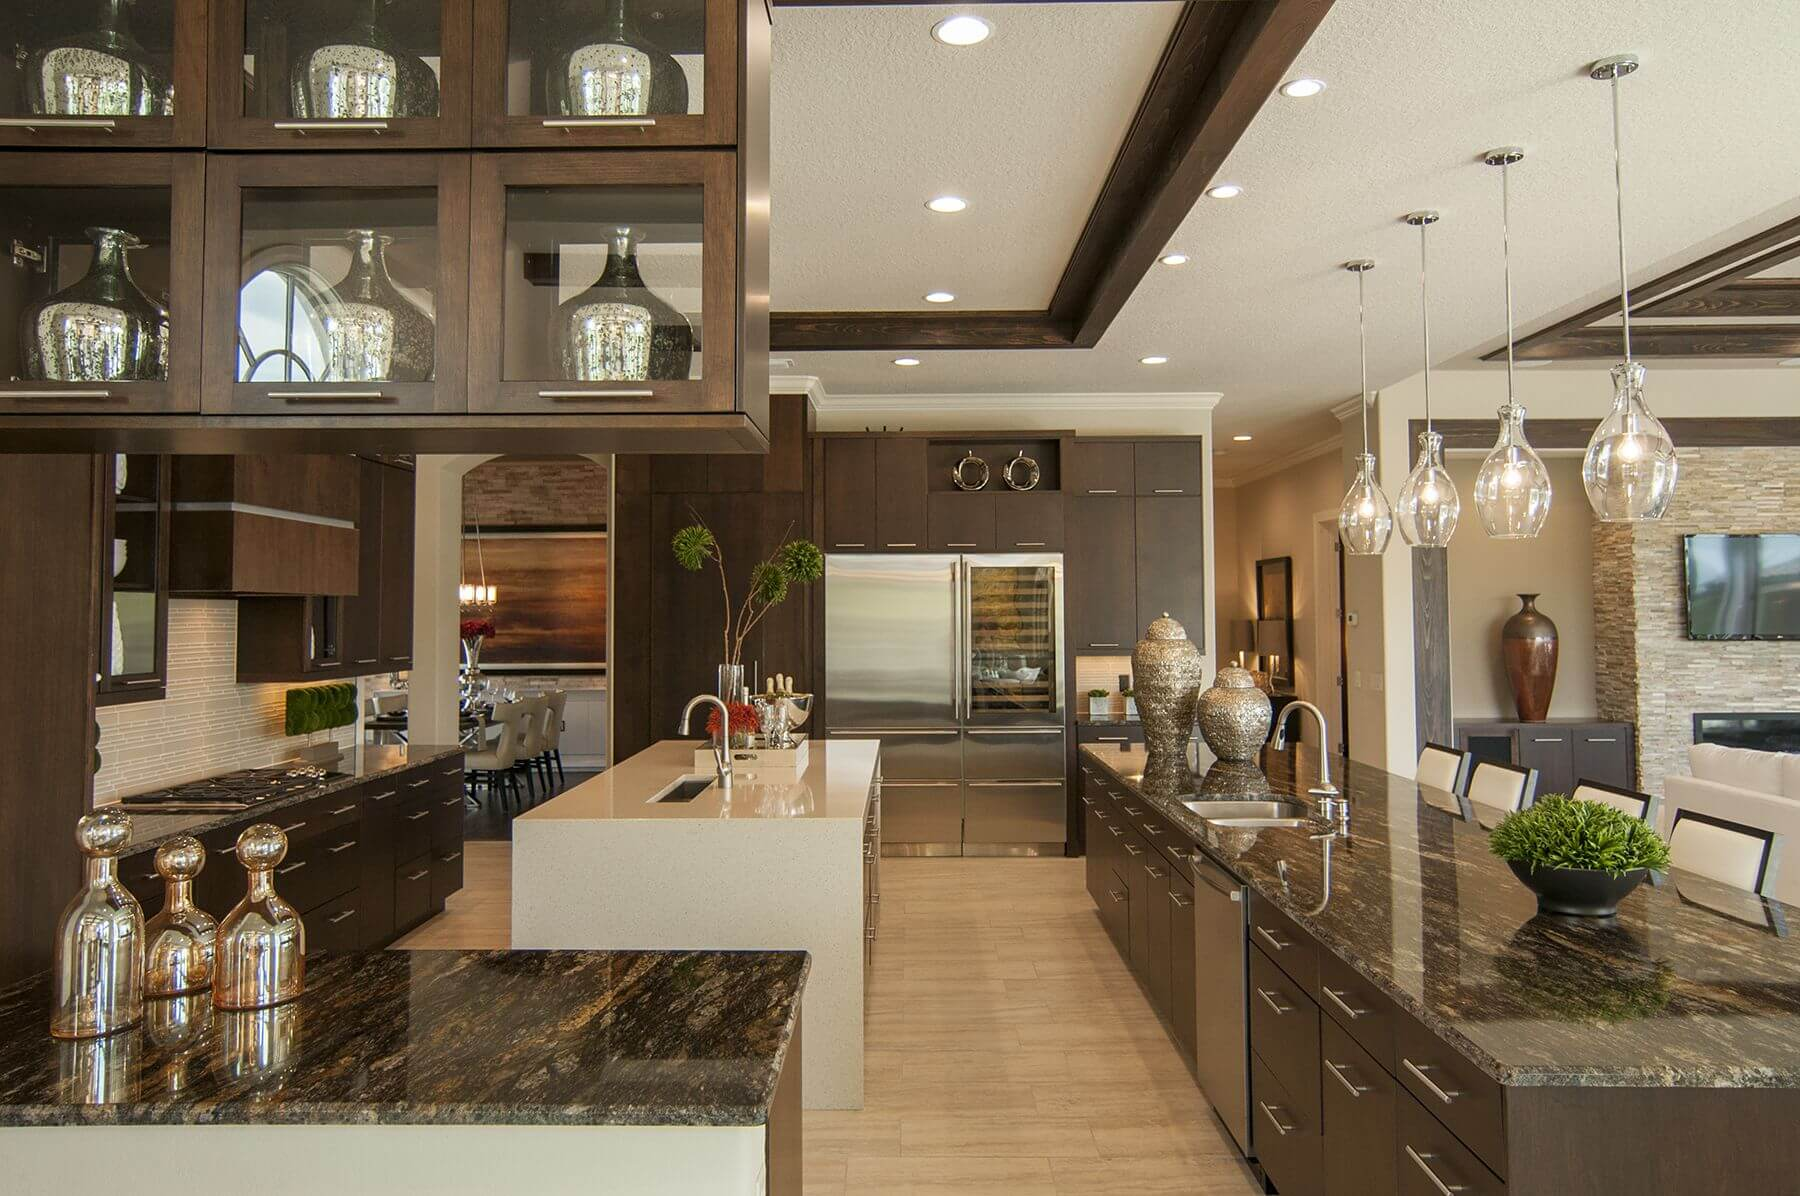 Ultra Modern Look Kitchen Flush With Dark Tones: Marble Countertops,  Minimalist Wood Cabinetry